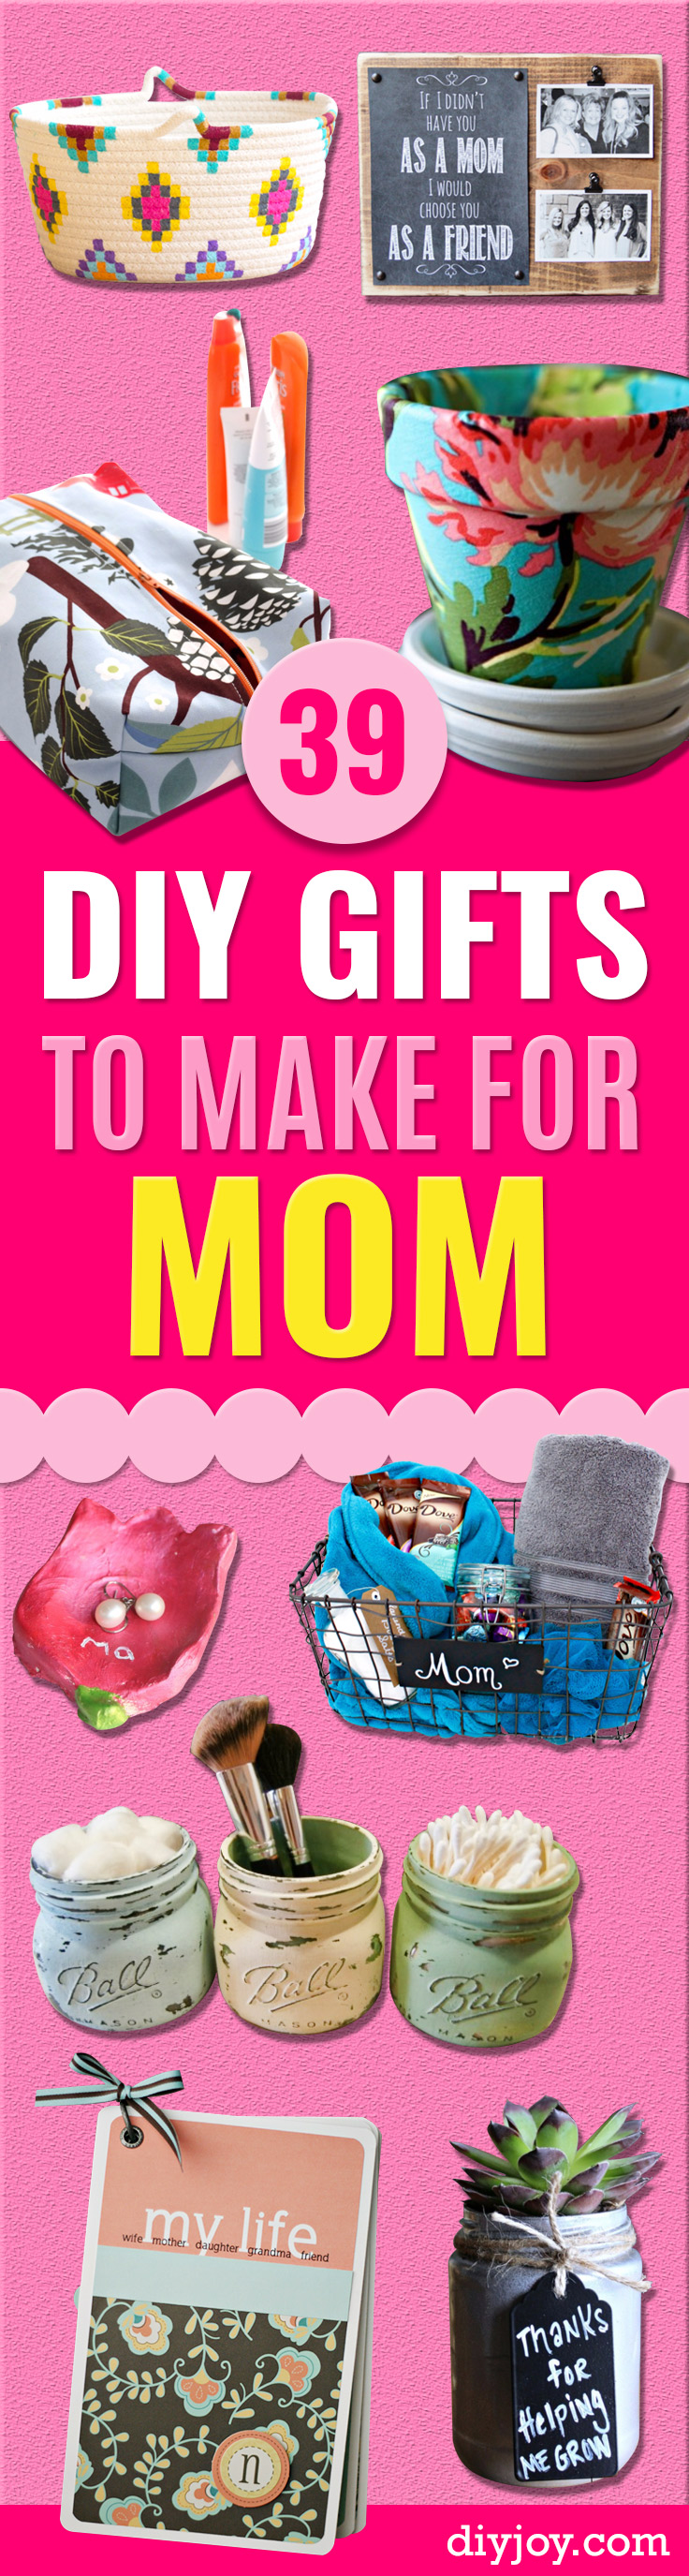 DIY Gifts for Mom - Best Craft Projects and Gift Ideas You Can Make for Your Mother - Last Minute Presents for Birthday and Christmas - Creative Photo Projects, Bath Ideas, Gift Baskets and Thoughtful Things to Give Mothers and Moms